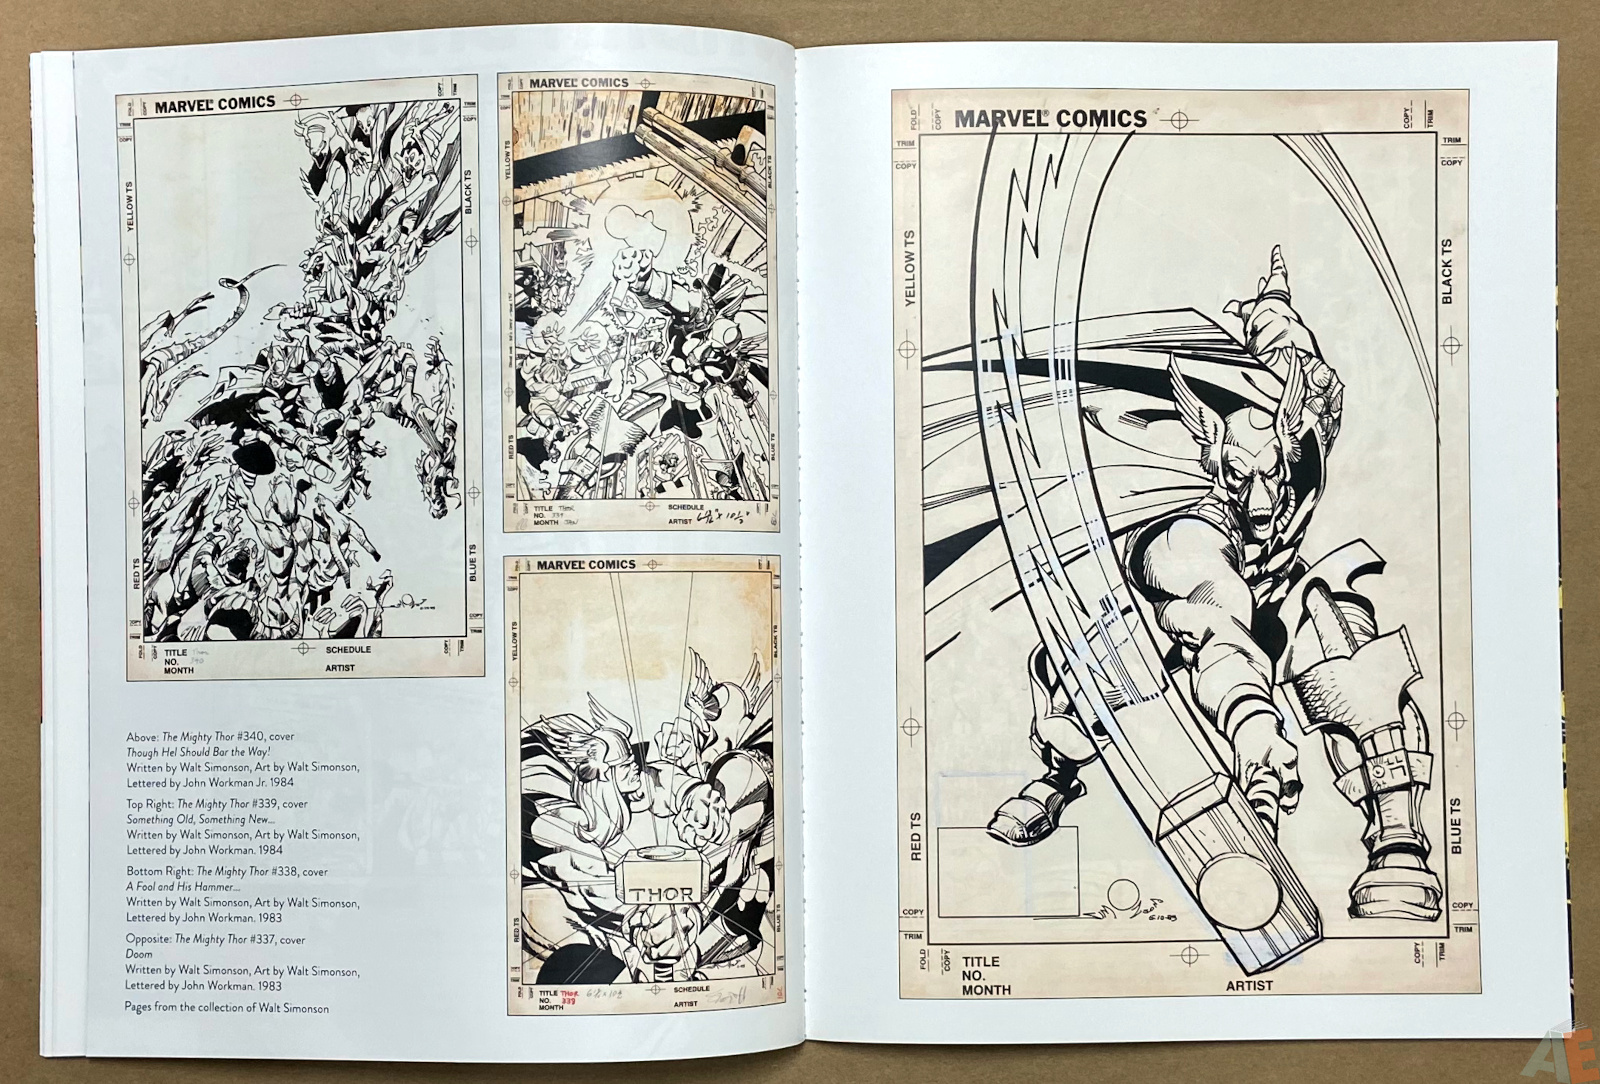 The Art of The Avengers and Other Heroes Exhibition Catalog interior 4